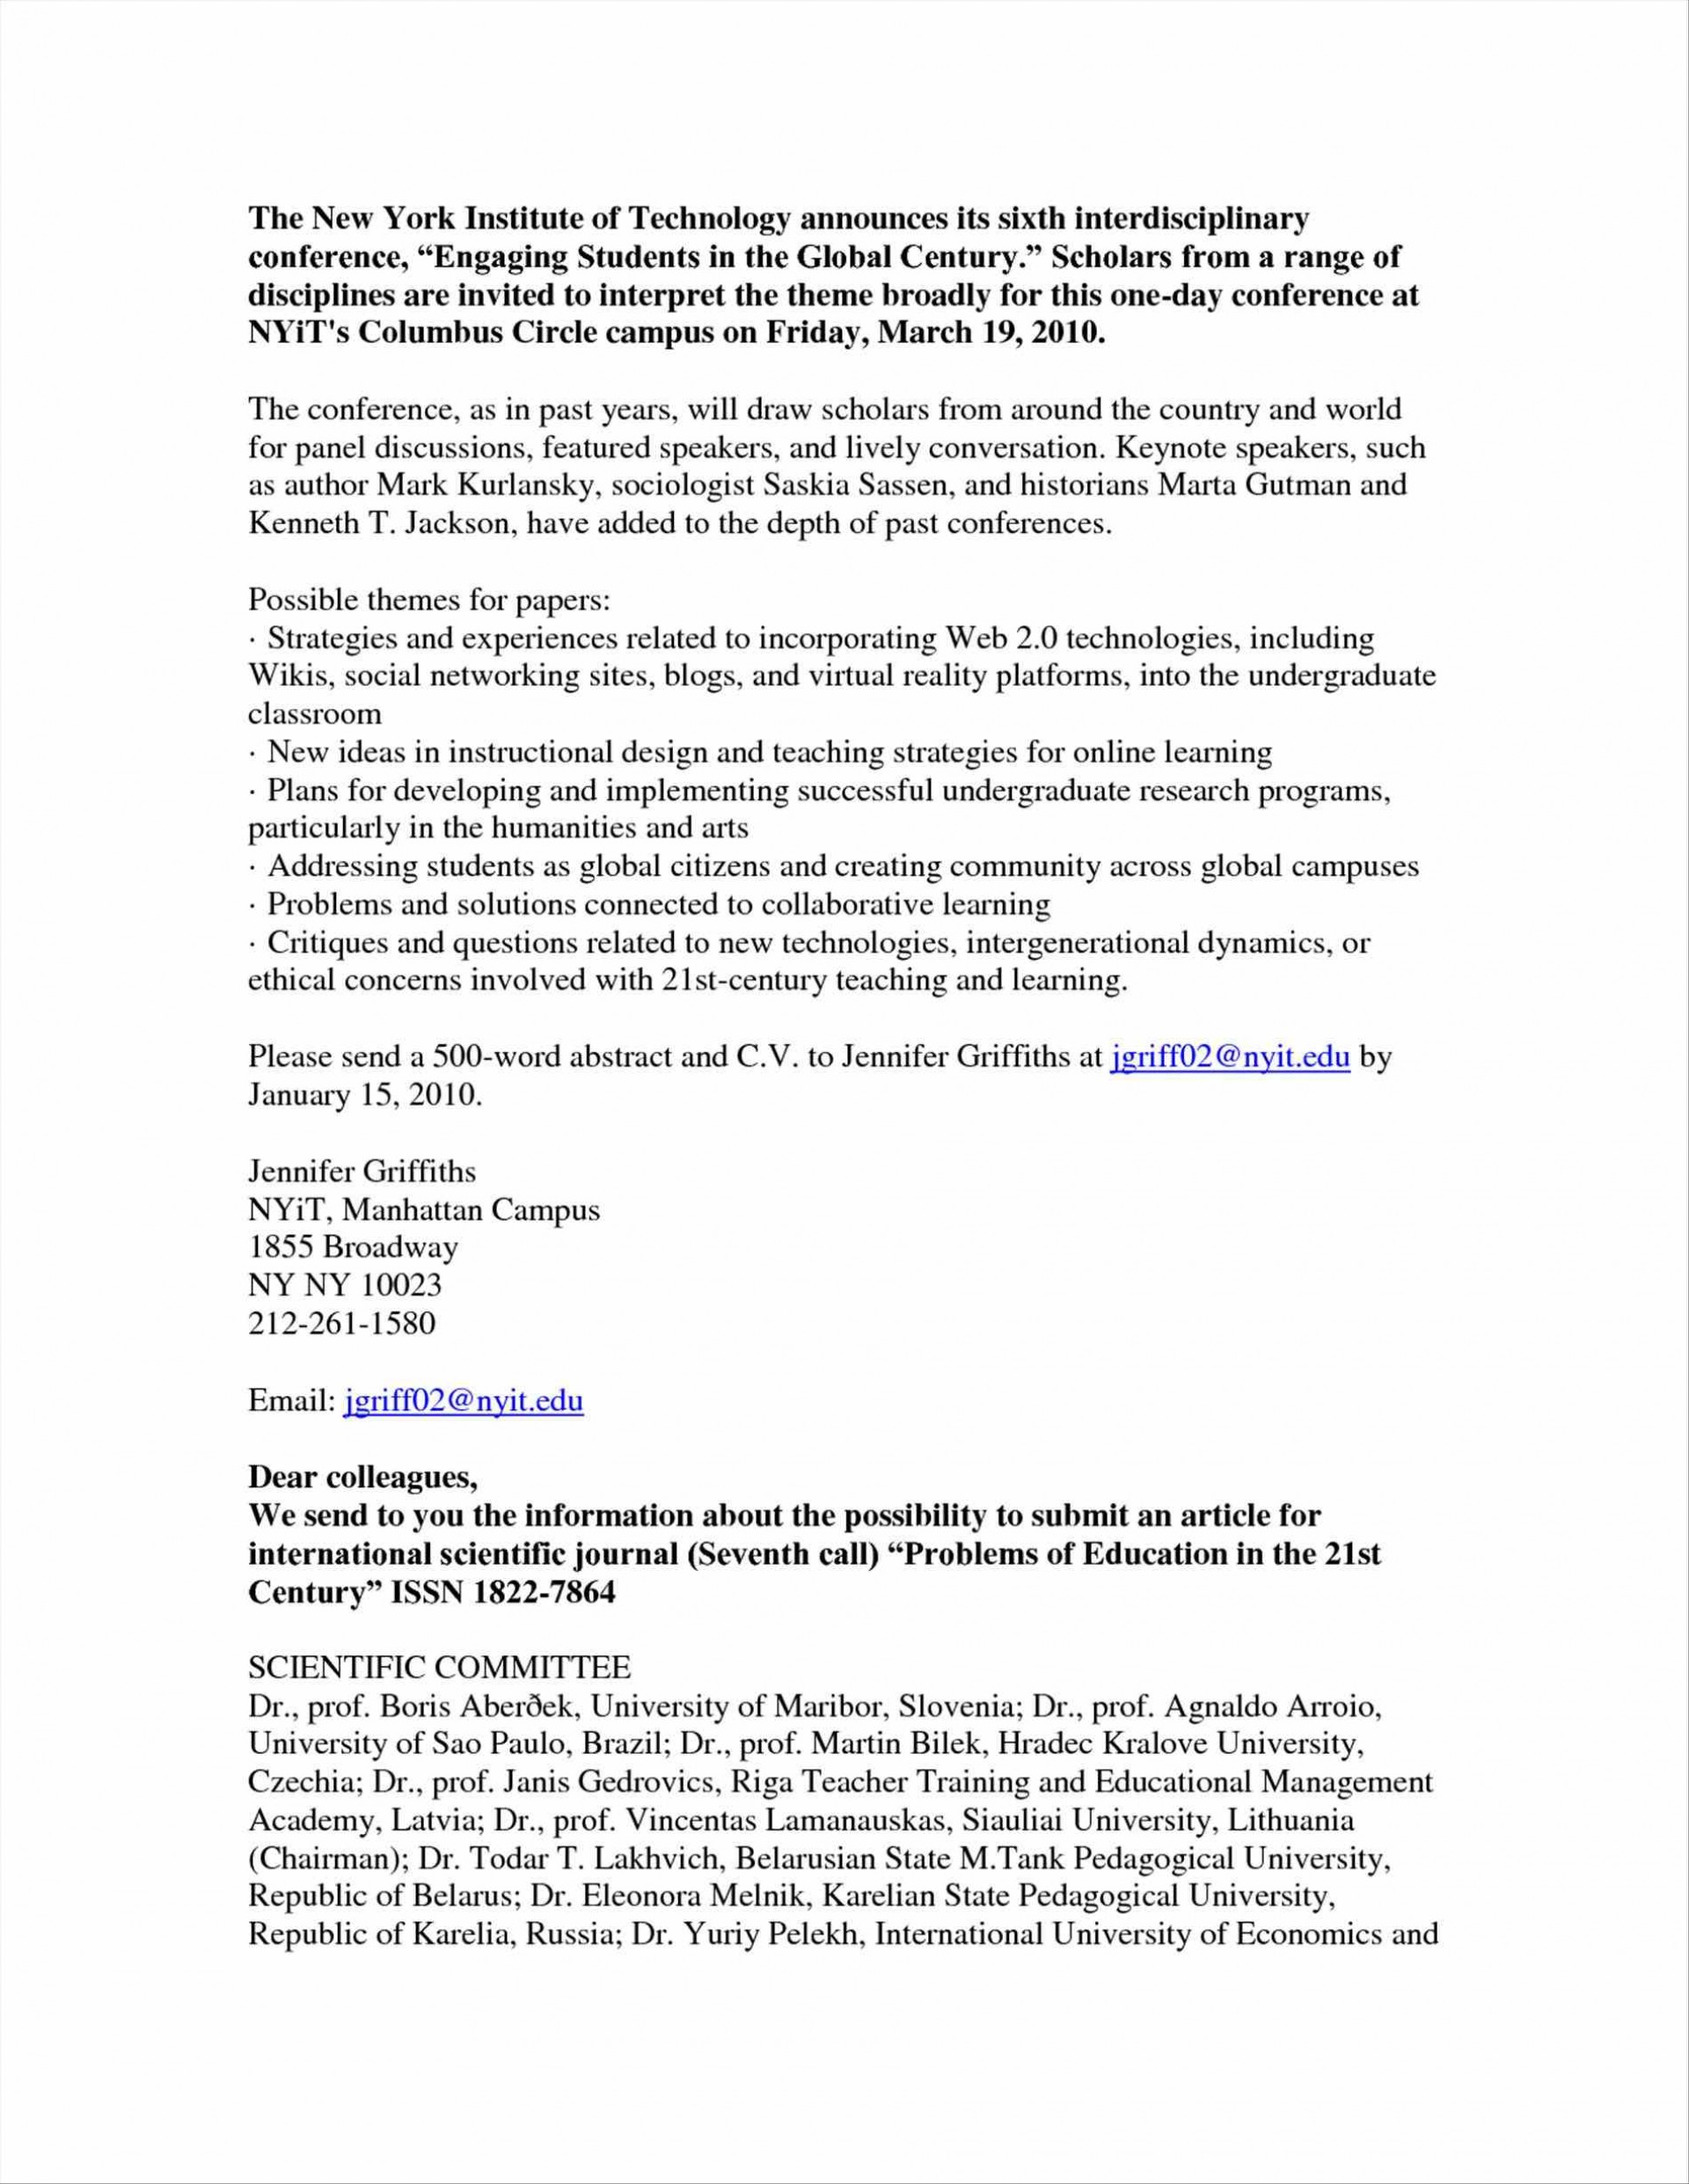 008 Apa Style Research Paper Template Format Soapn Example Of L How To Write Magnificent A Outline 1920